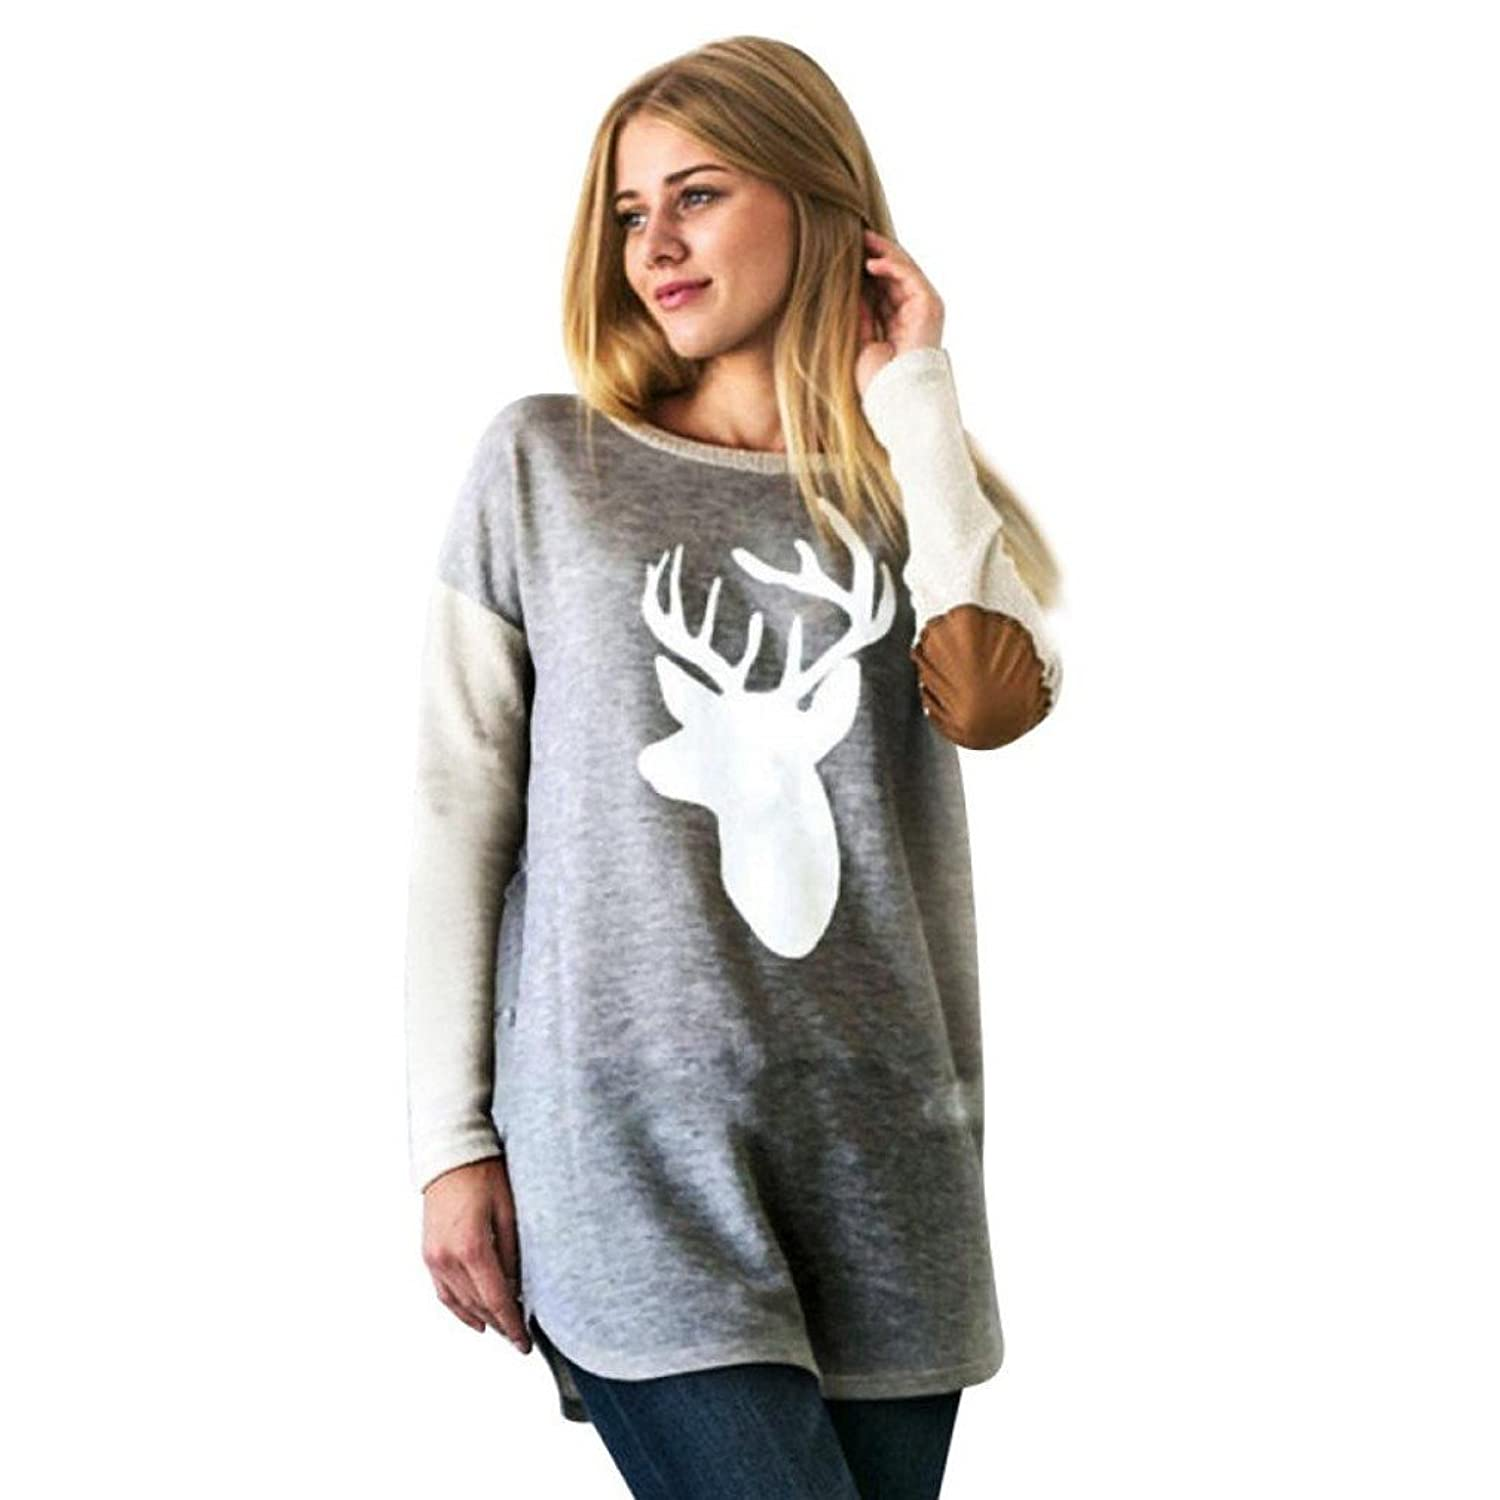 Amazon.com: Fashion Blouse,Morecome Women Long Sleeve Deer Printed Shirt Casual Blouse: Clothing